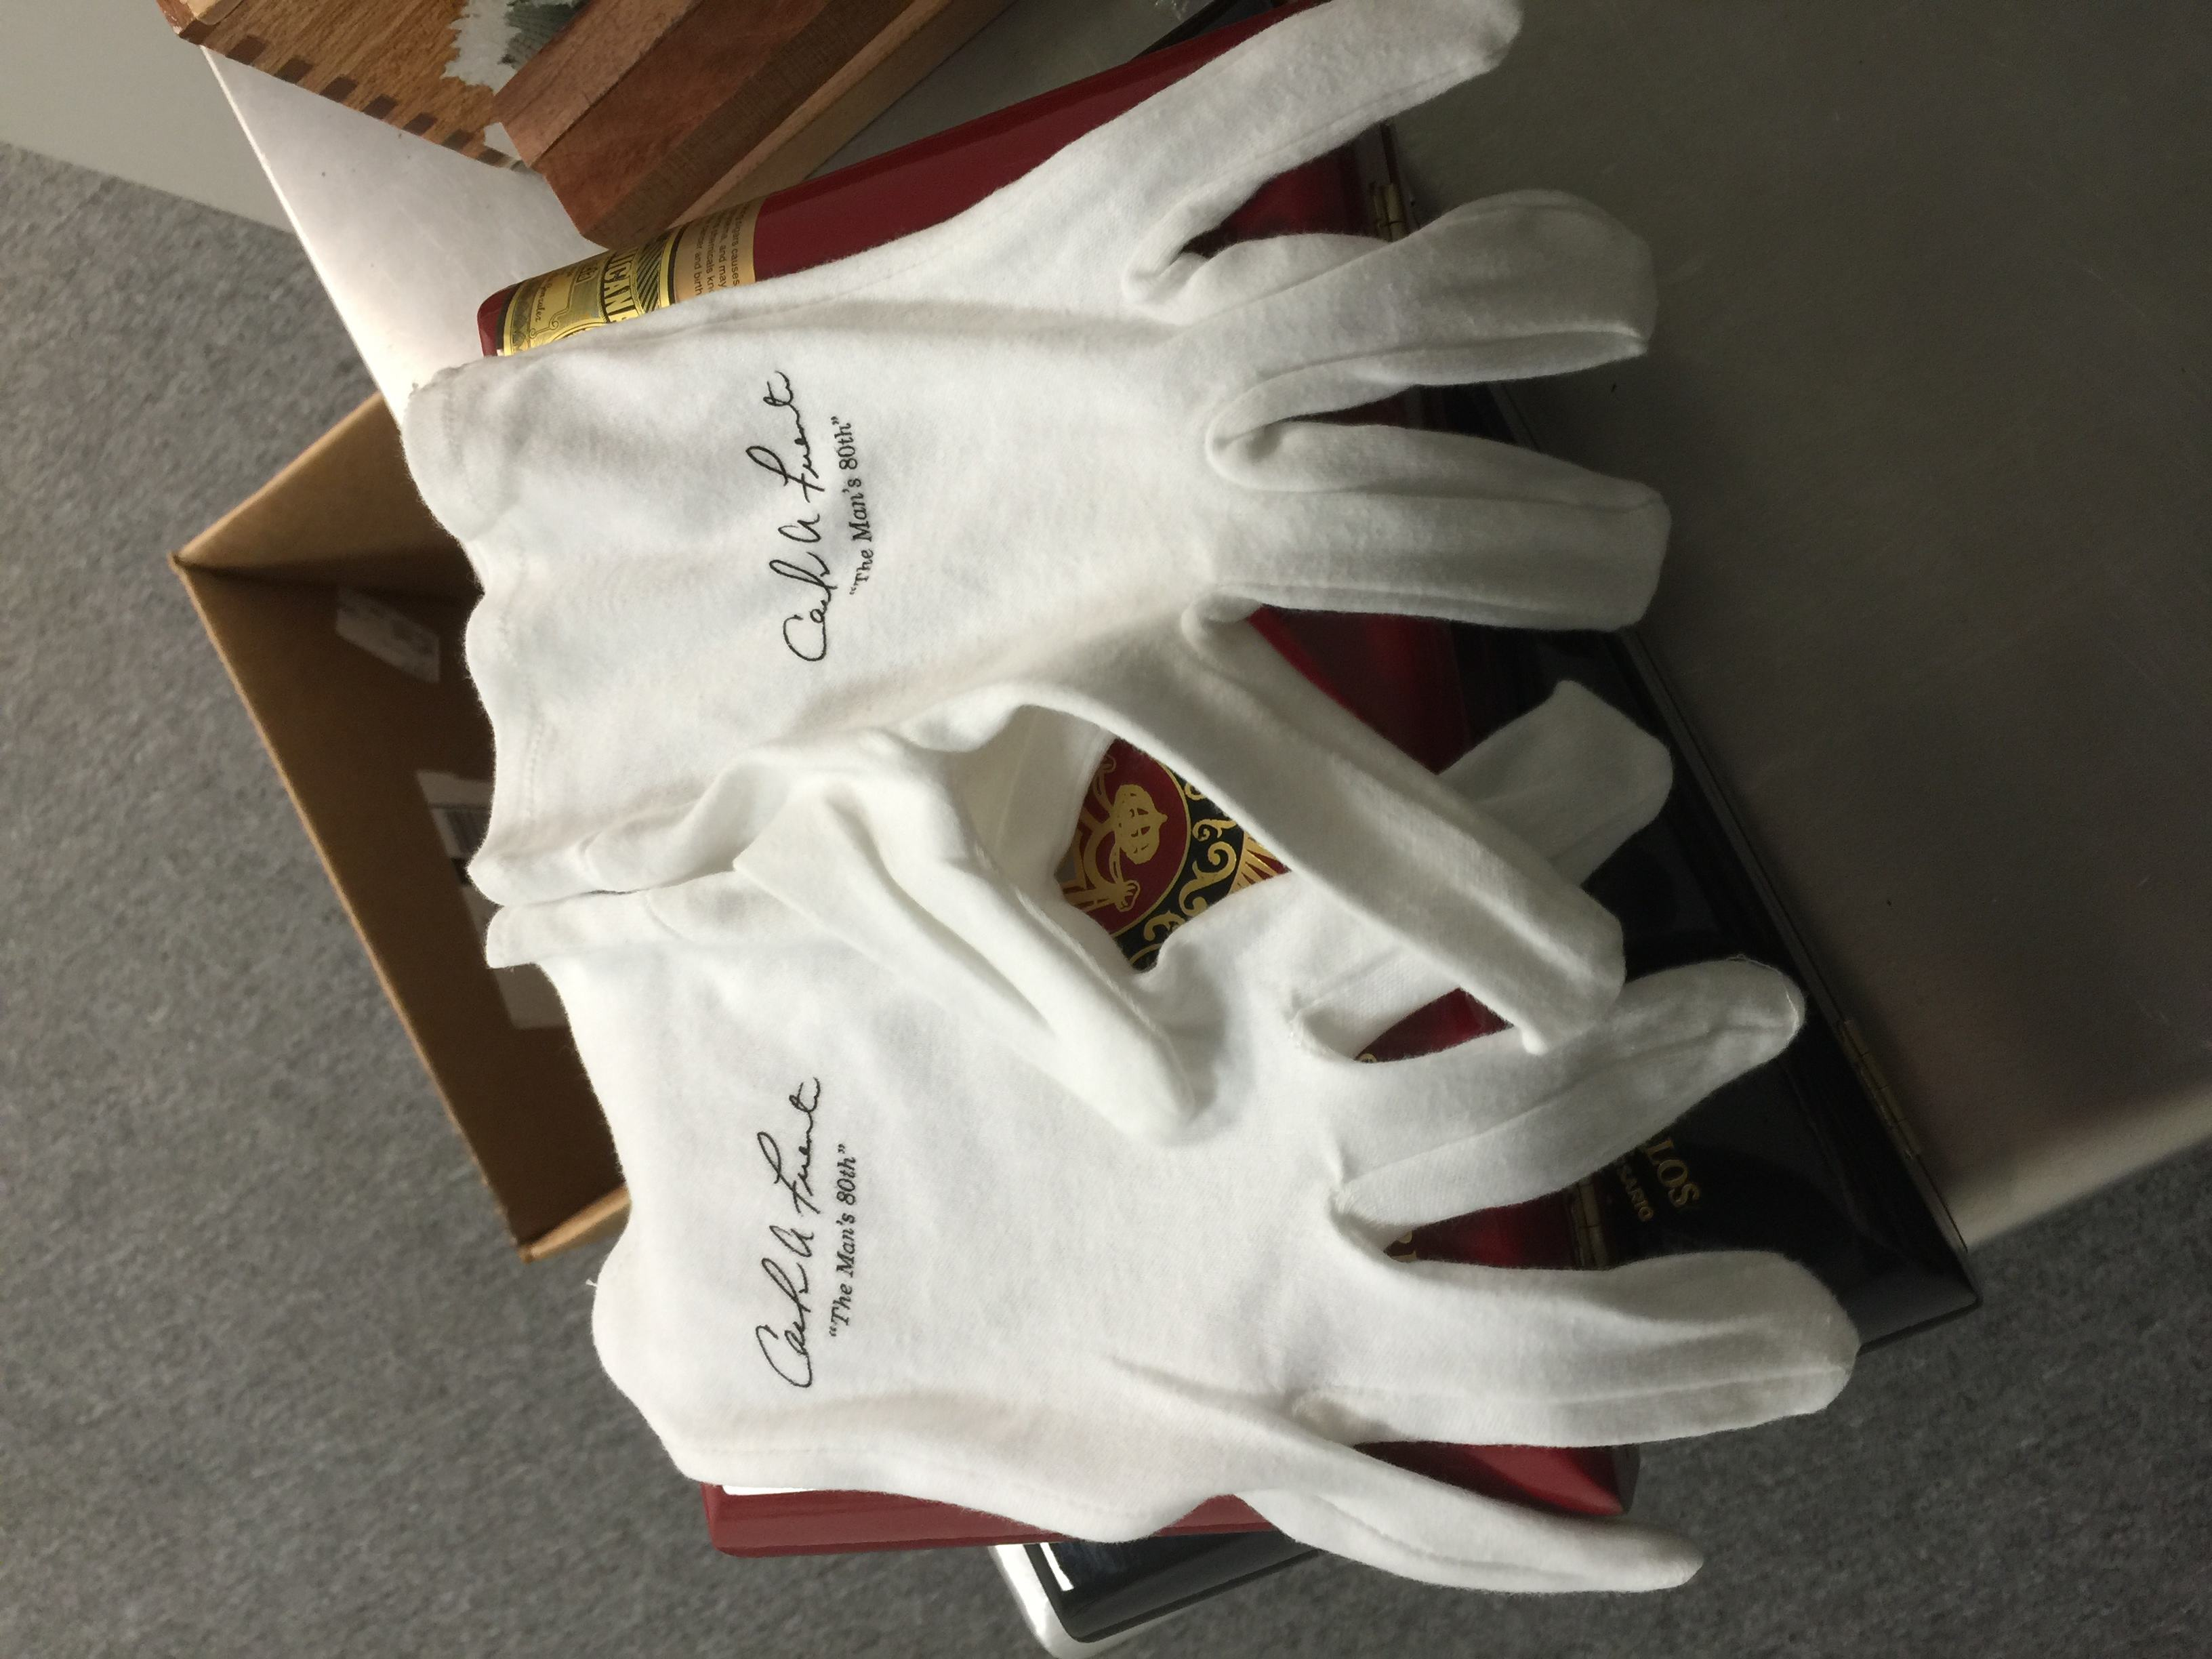 Arturo Fuente Don Carlos Eye of the Shark gloves